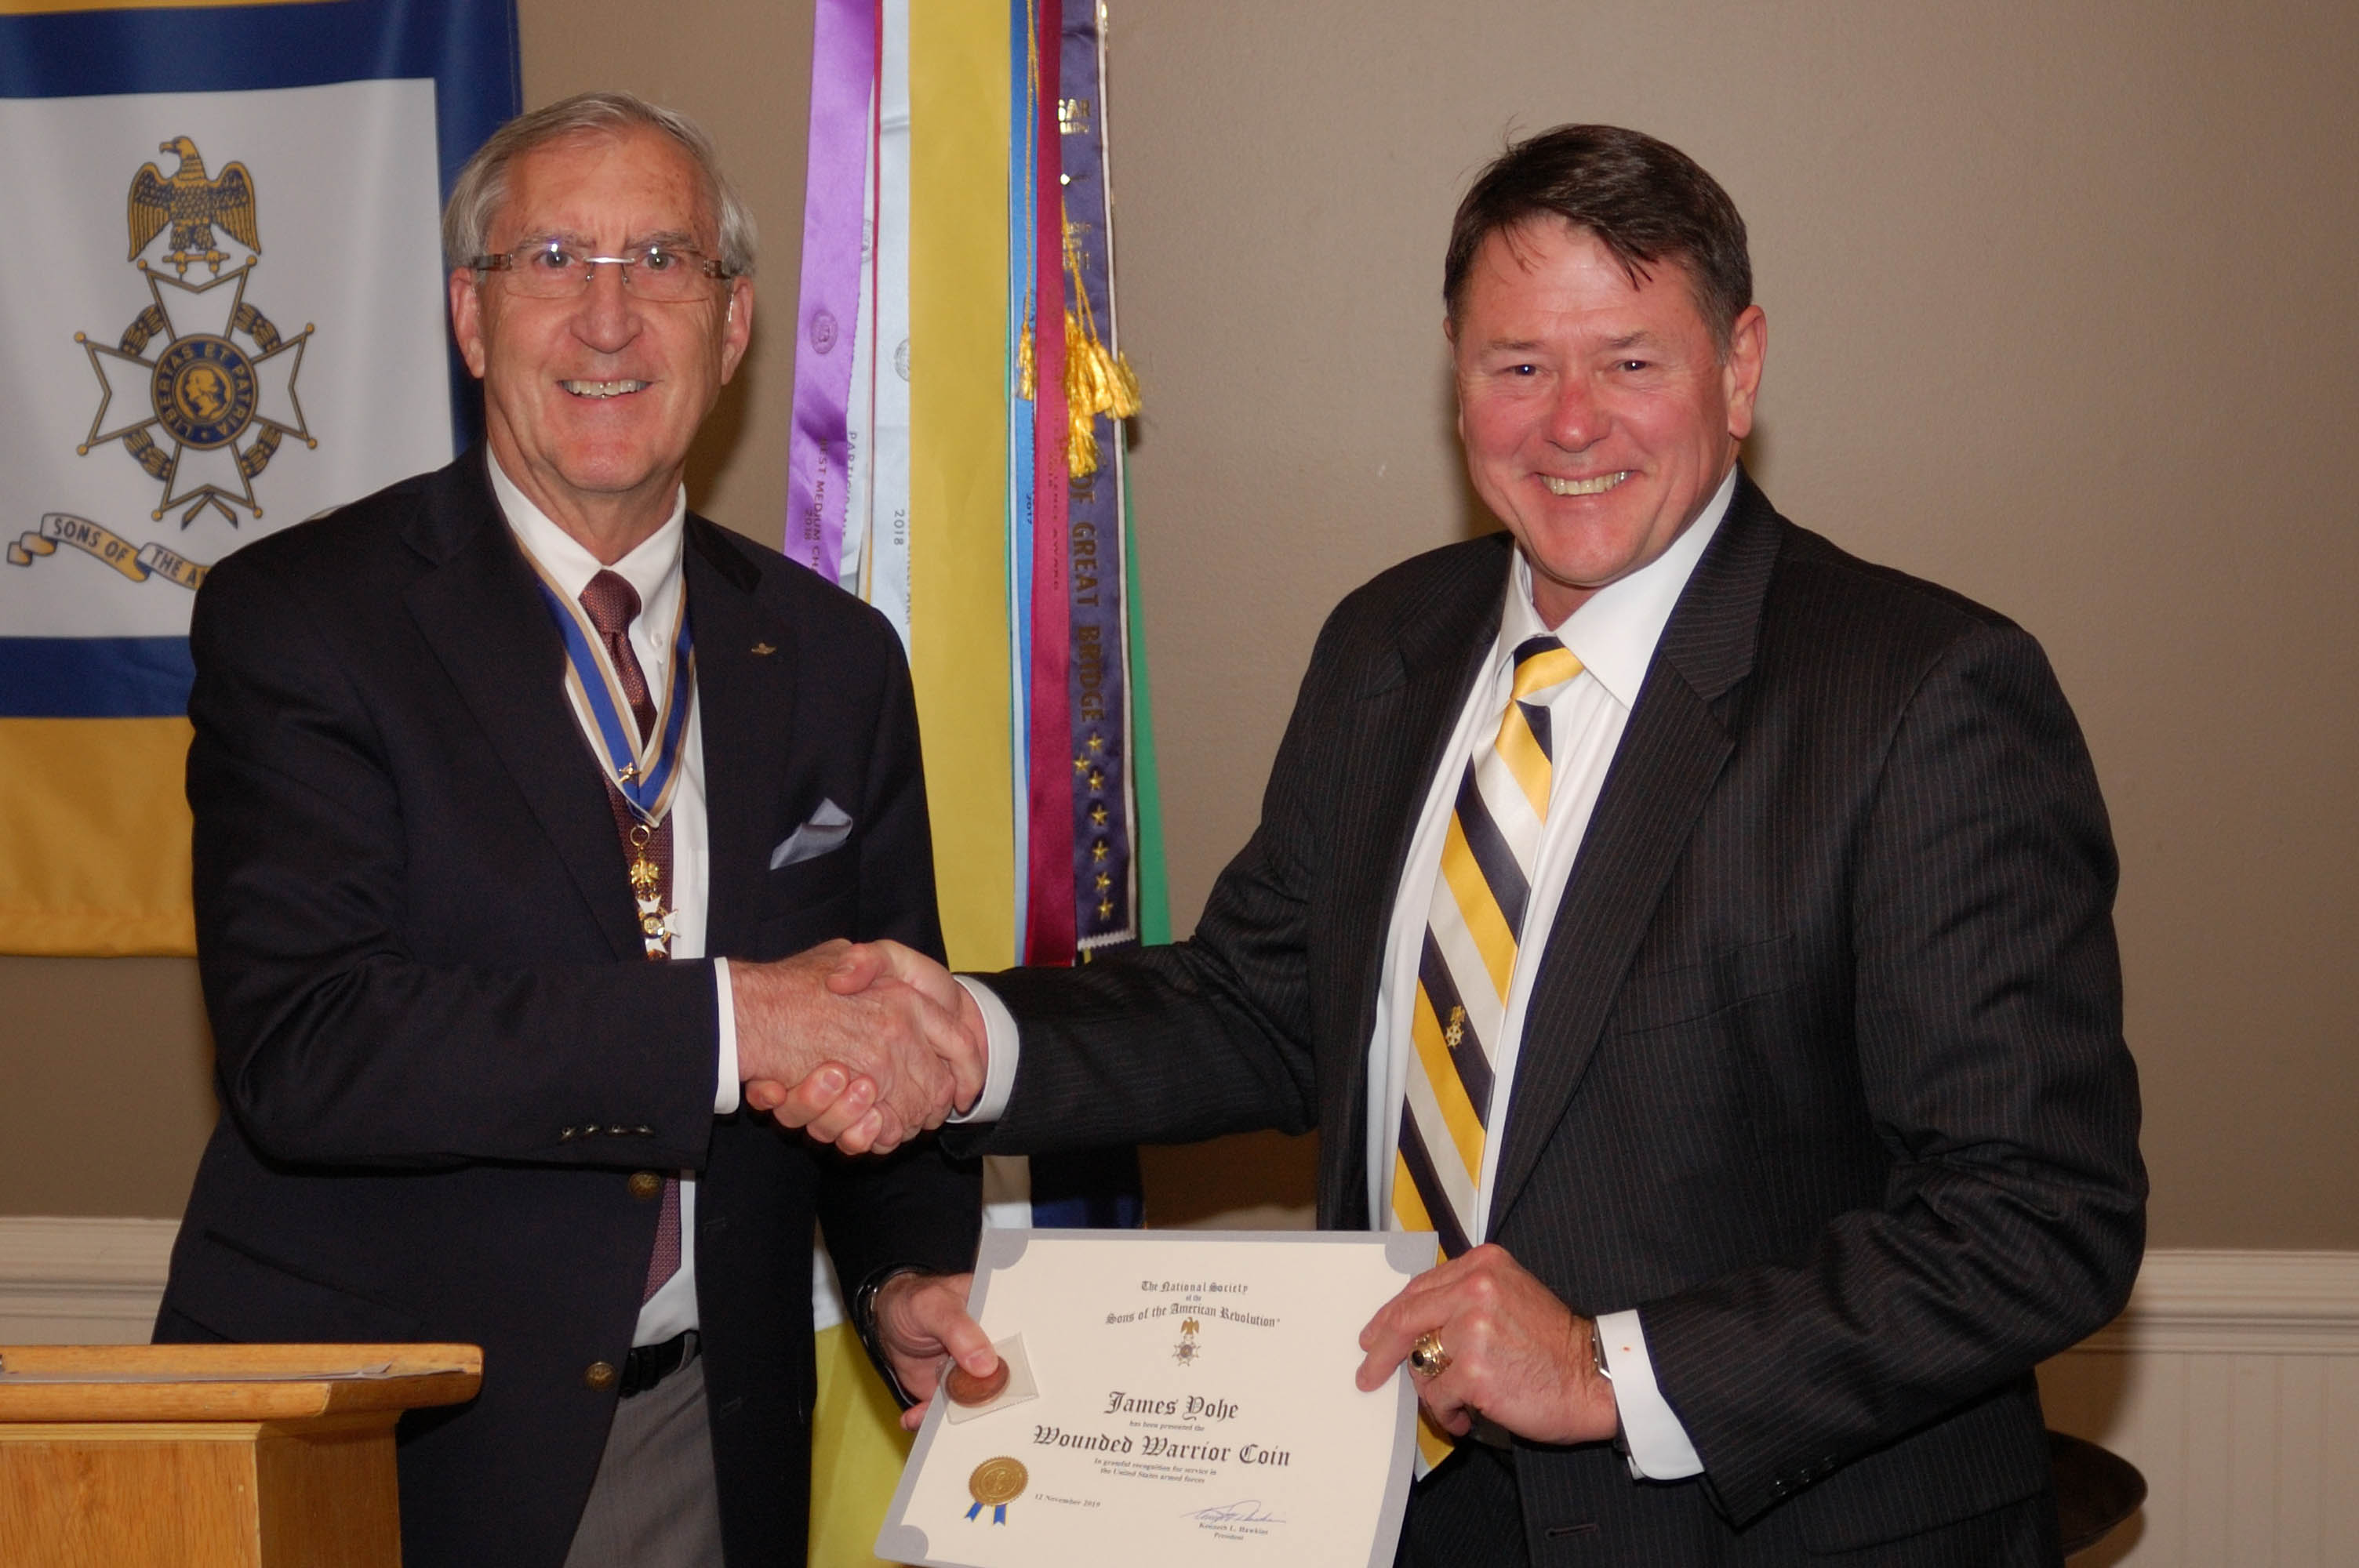 Chapter Registrar Jim Yohe receiving Wounded Warrior certificate and coin from President Ken Hawkins